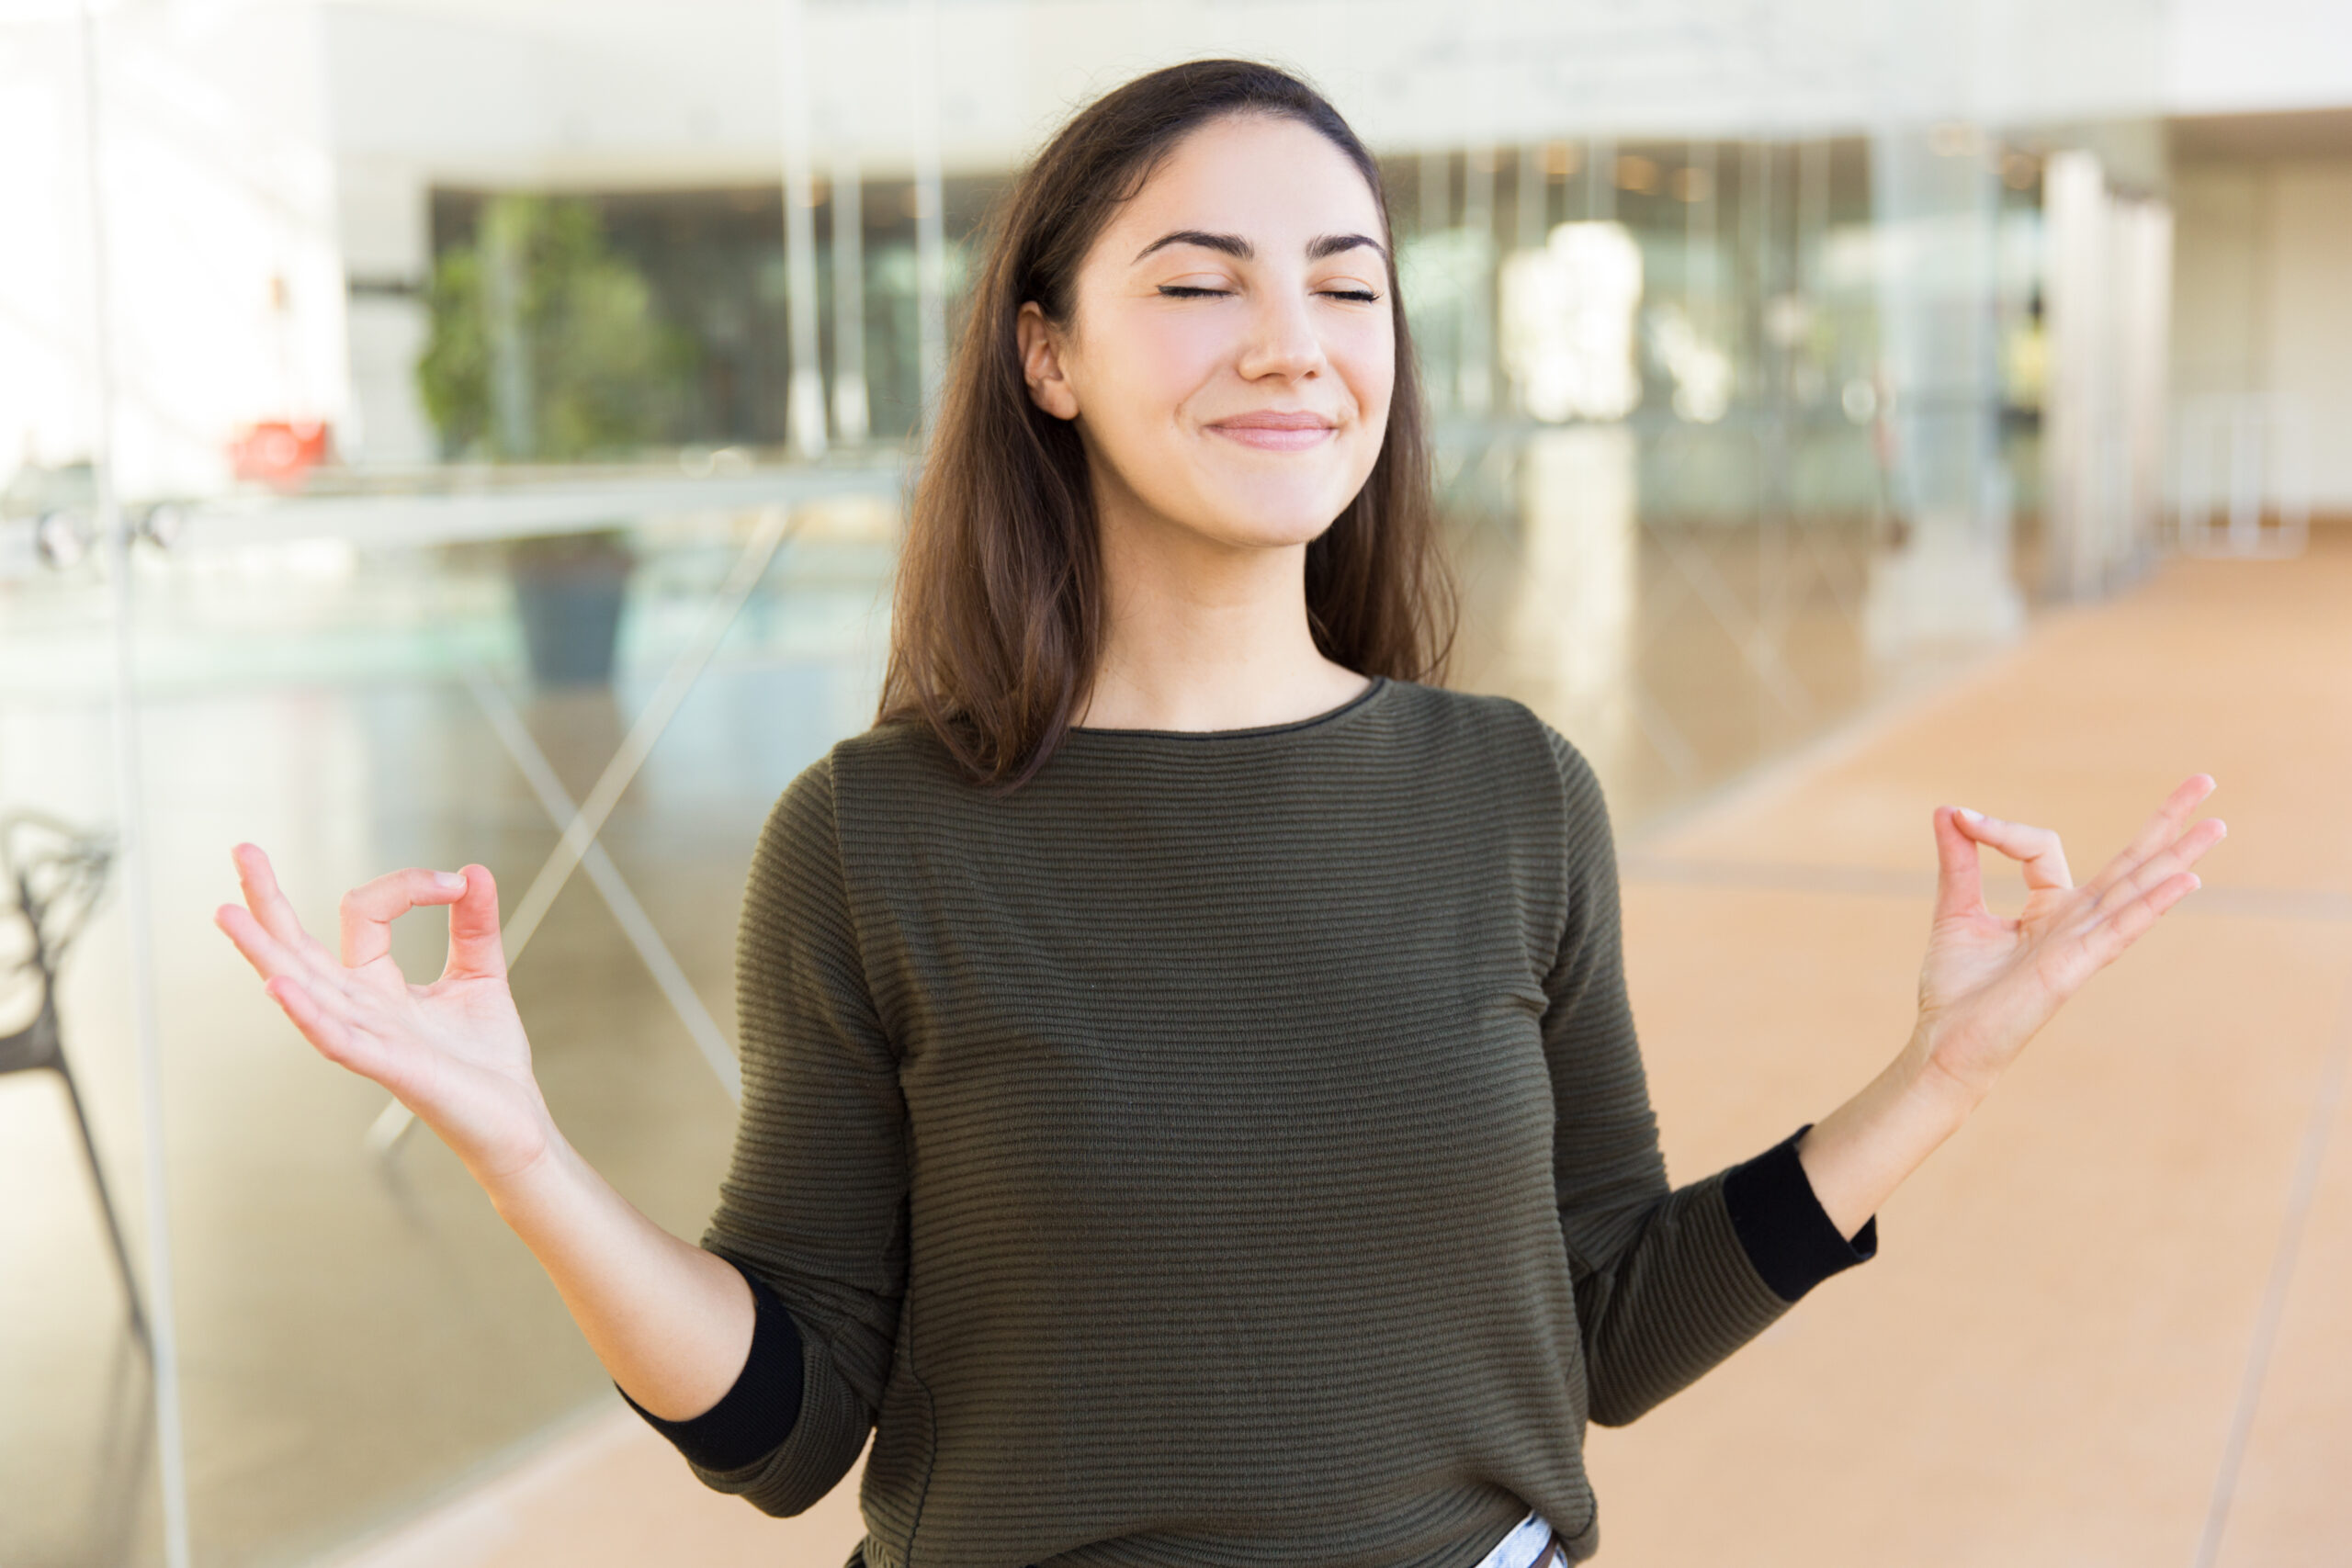 Peaceful smiling beautiful woman making zen gesture with hands. Young woman in casual posing indoors with glass wall interior in background. Stress relief concept